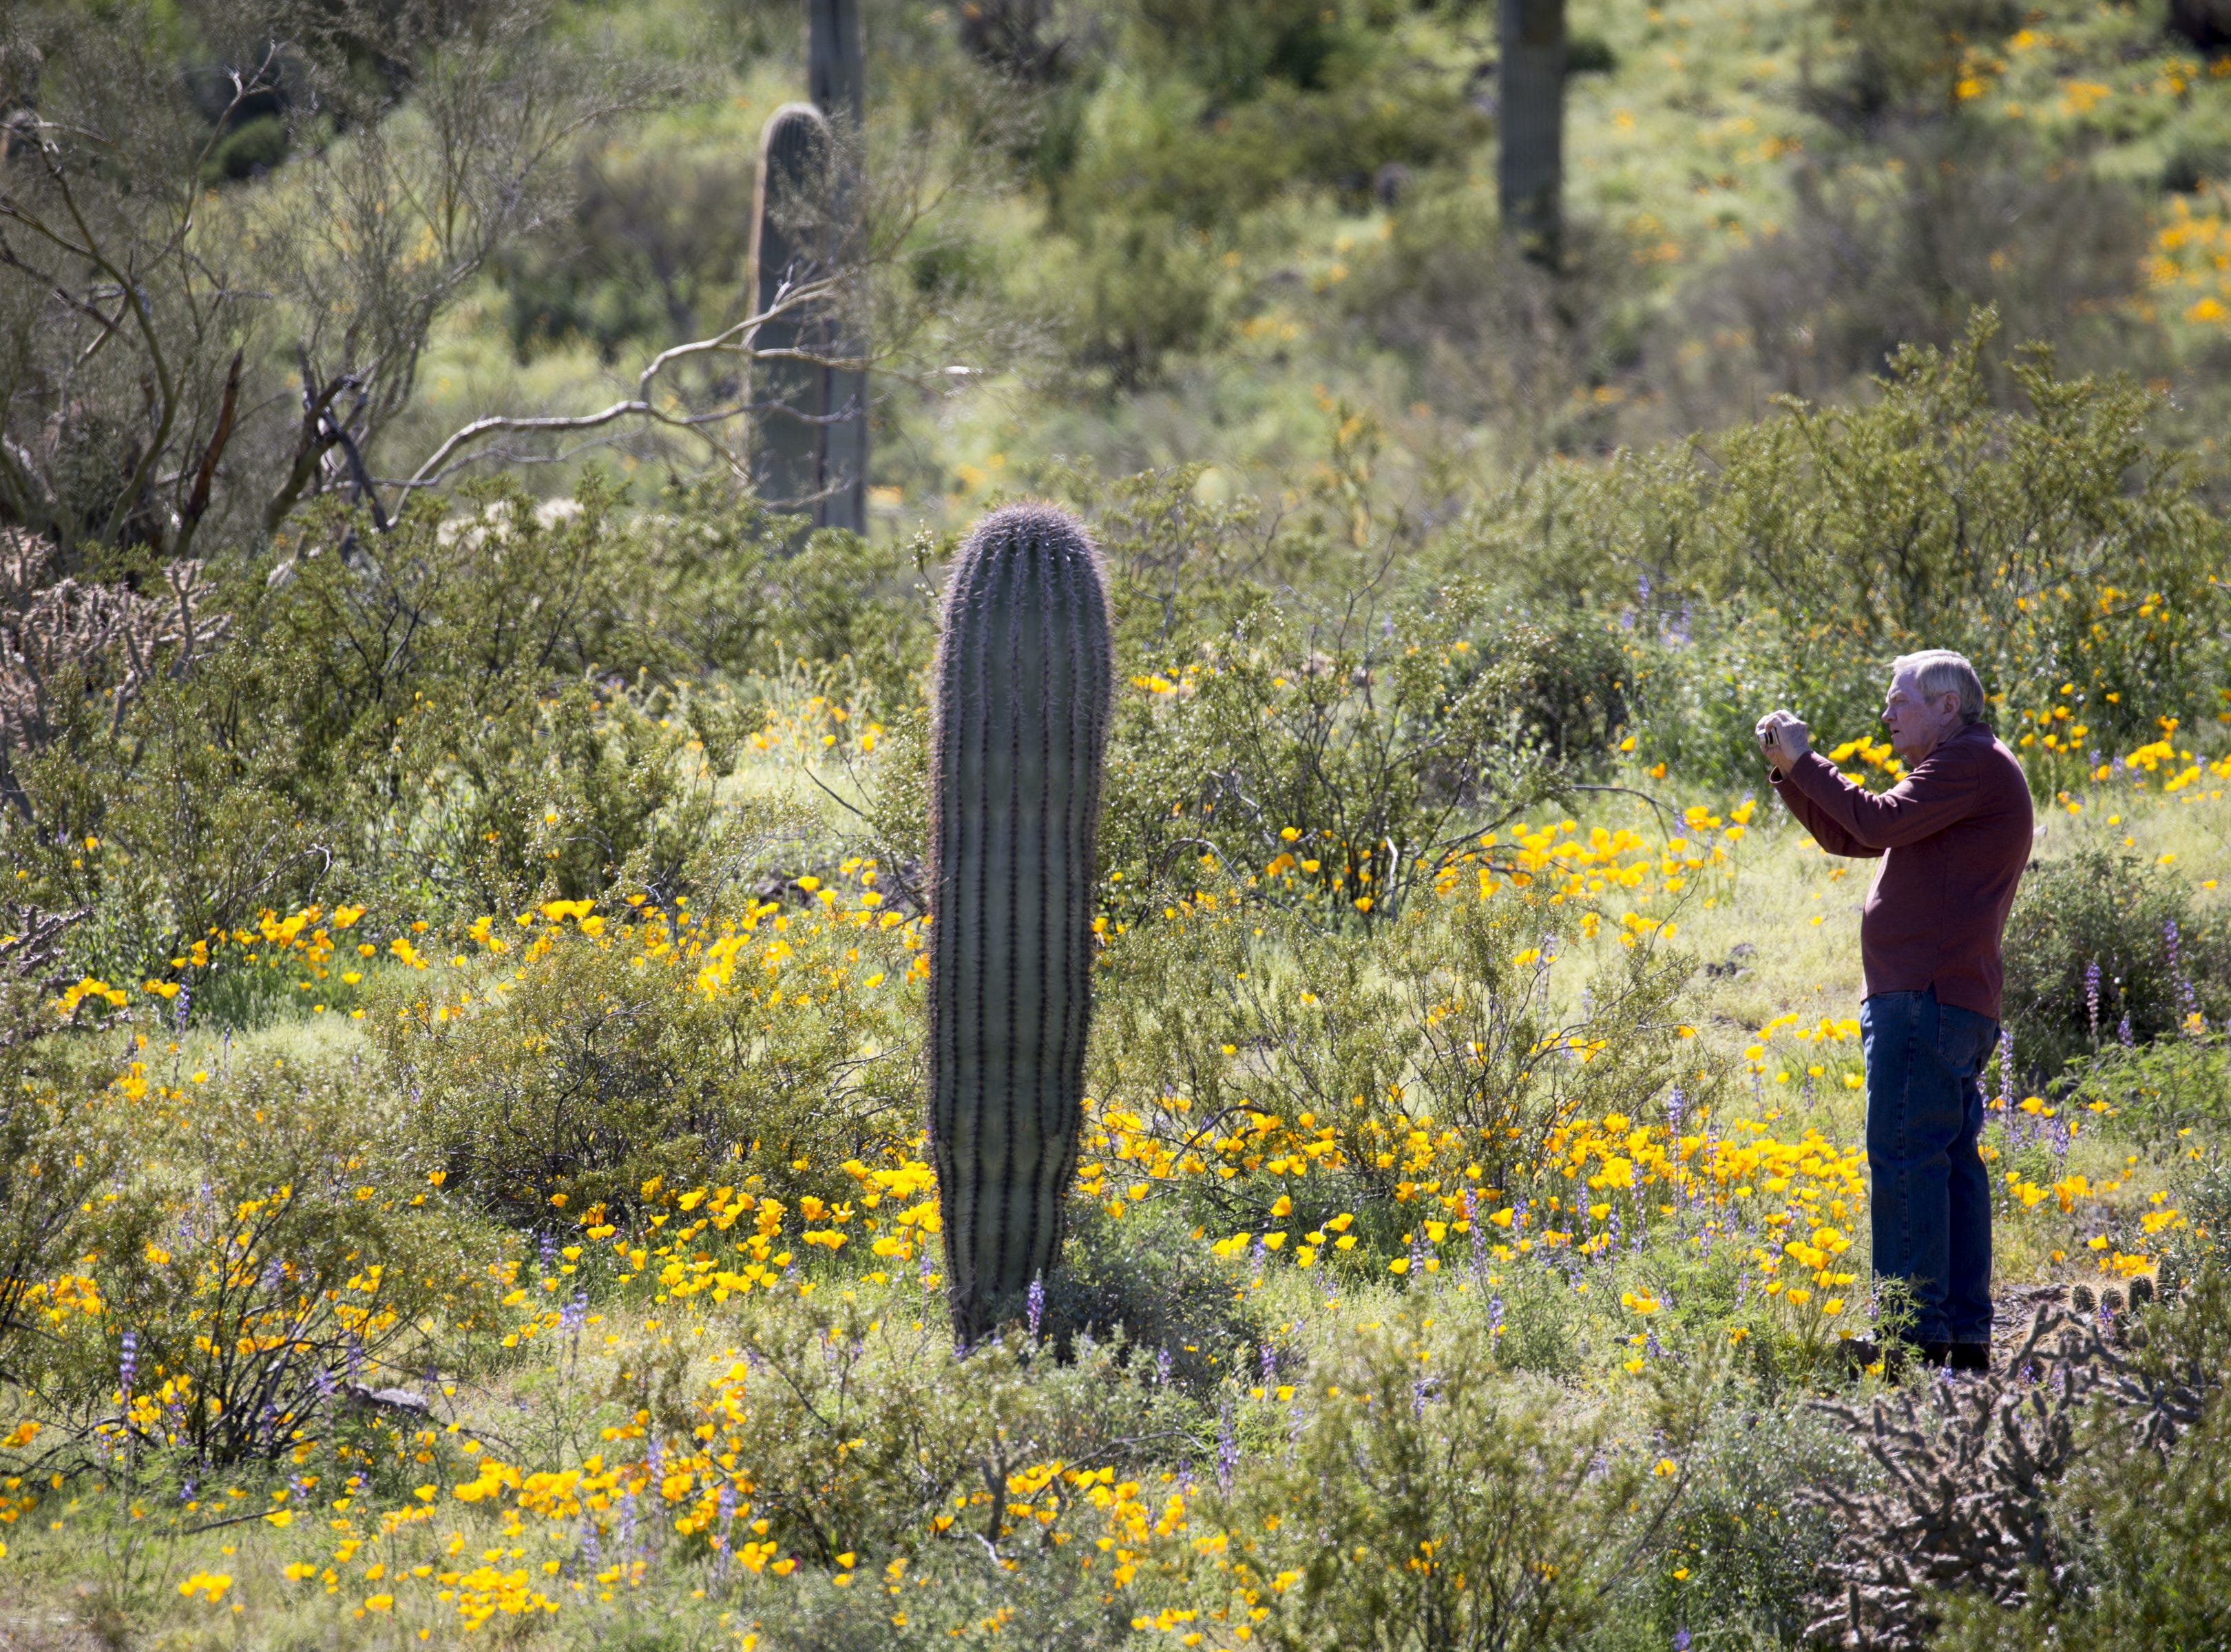 Jim Recer (Tucson) photographs wildflowers, March 5, 2019, at Picacho Peak State Park, Arizona.